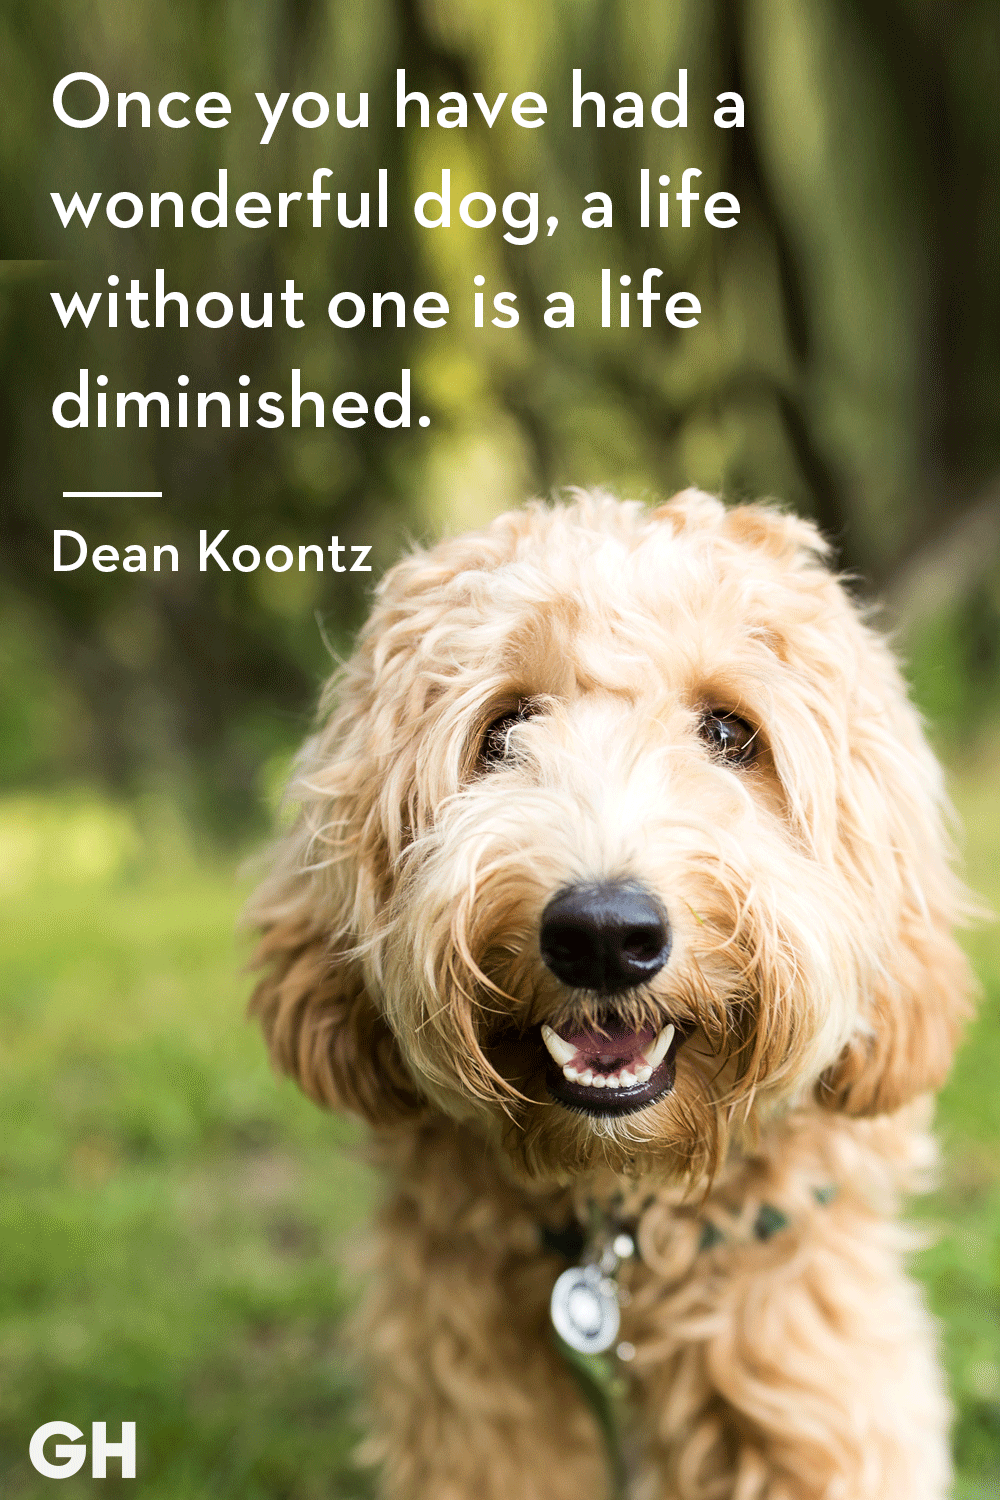 30 Dog Quotes That Every Animal Lover Will Relate To - Best